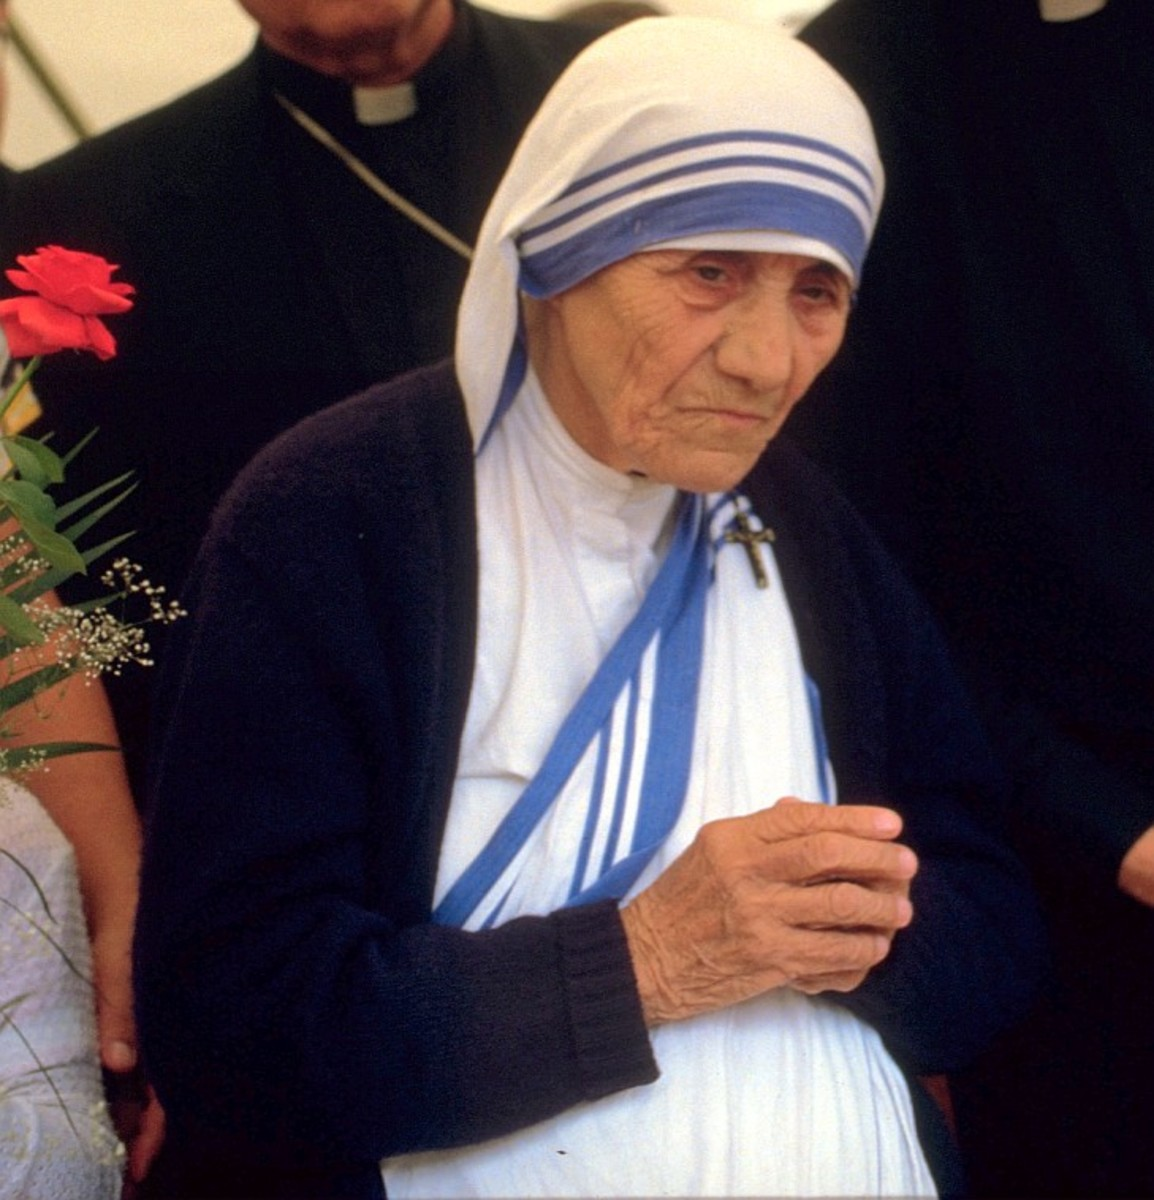 Mother Theresa in Bonn, Germany, 1986